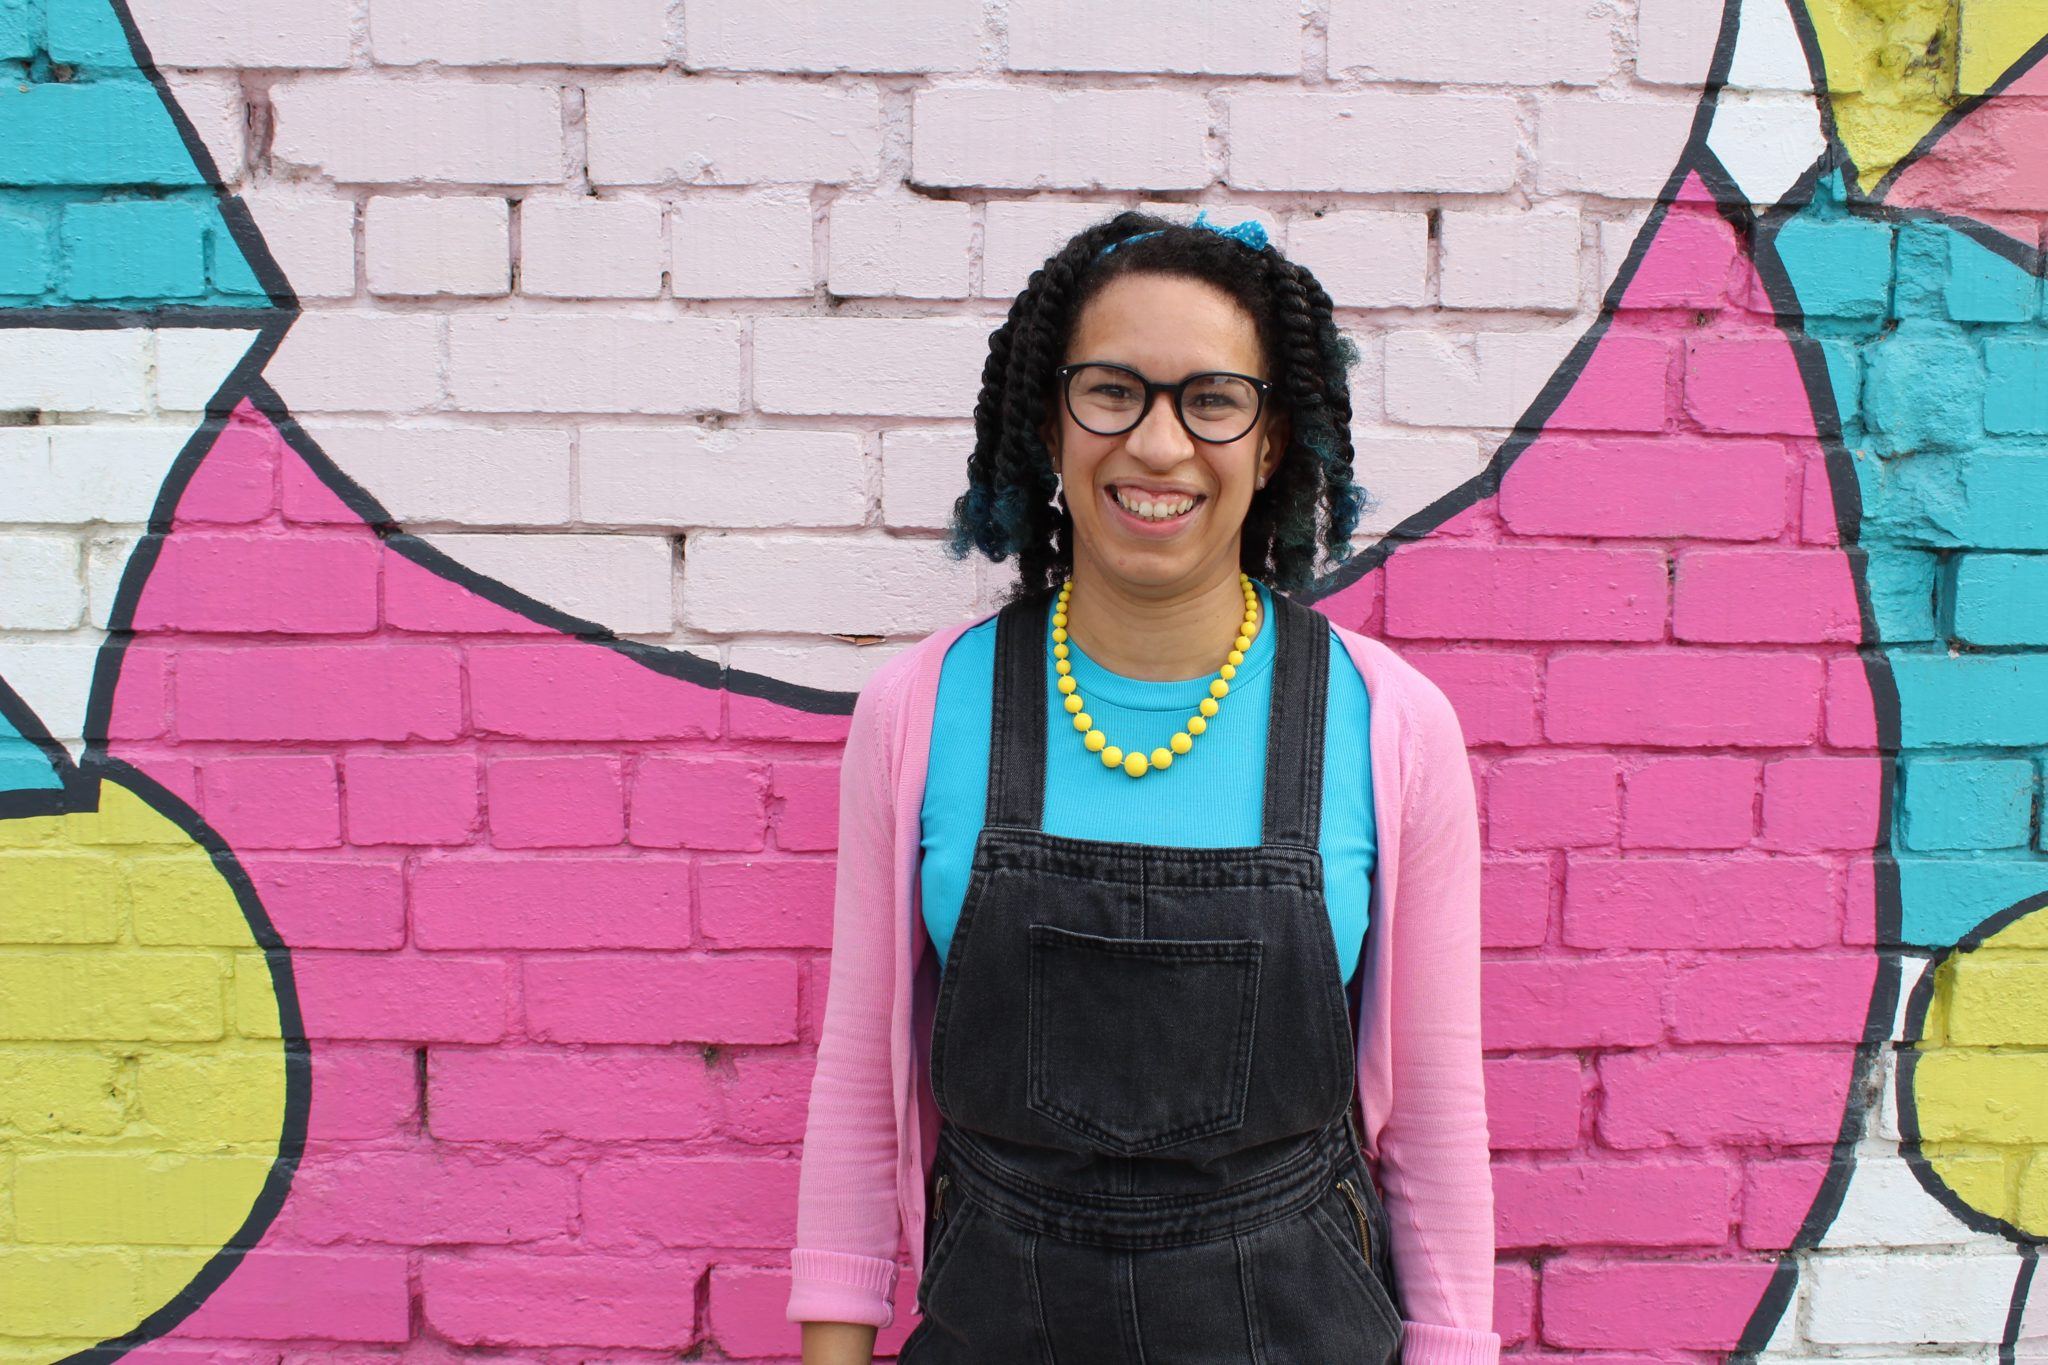 A Black woman with mid length hair stands in front a painted pink brick wall. She is wearing a turquoise tee with black dungarees and pink cardigan accessorised with bright yellow beaded necklace. She has on glasses and is smiling with an open smile at the camera